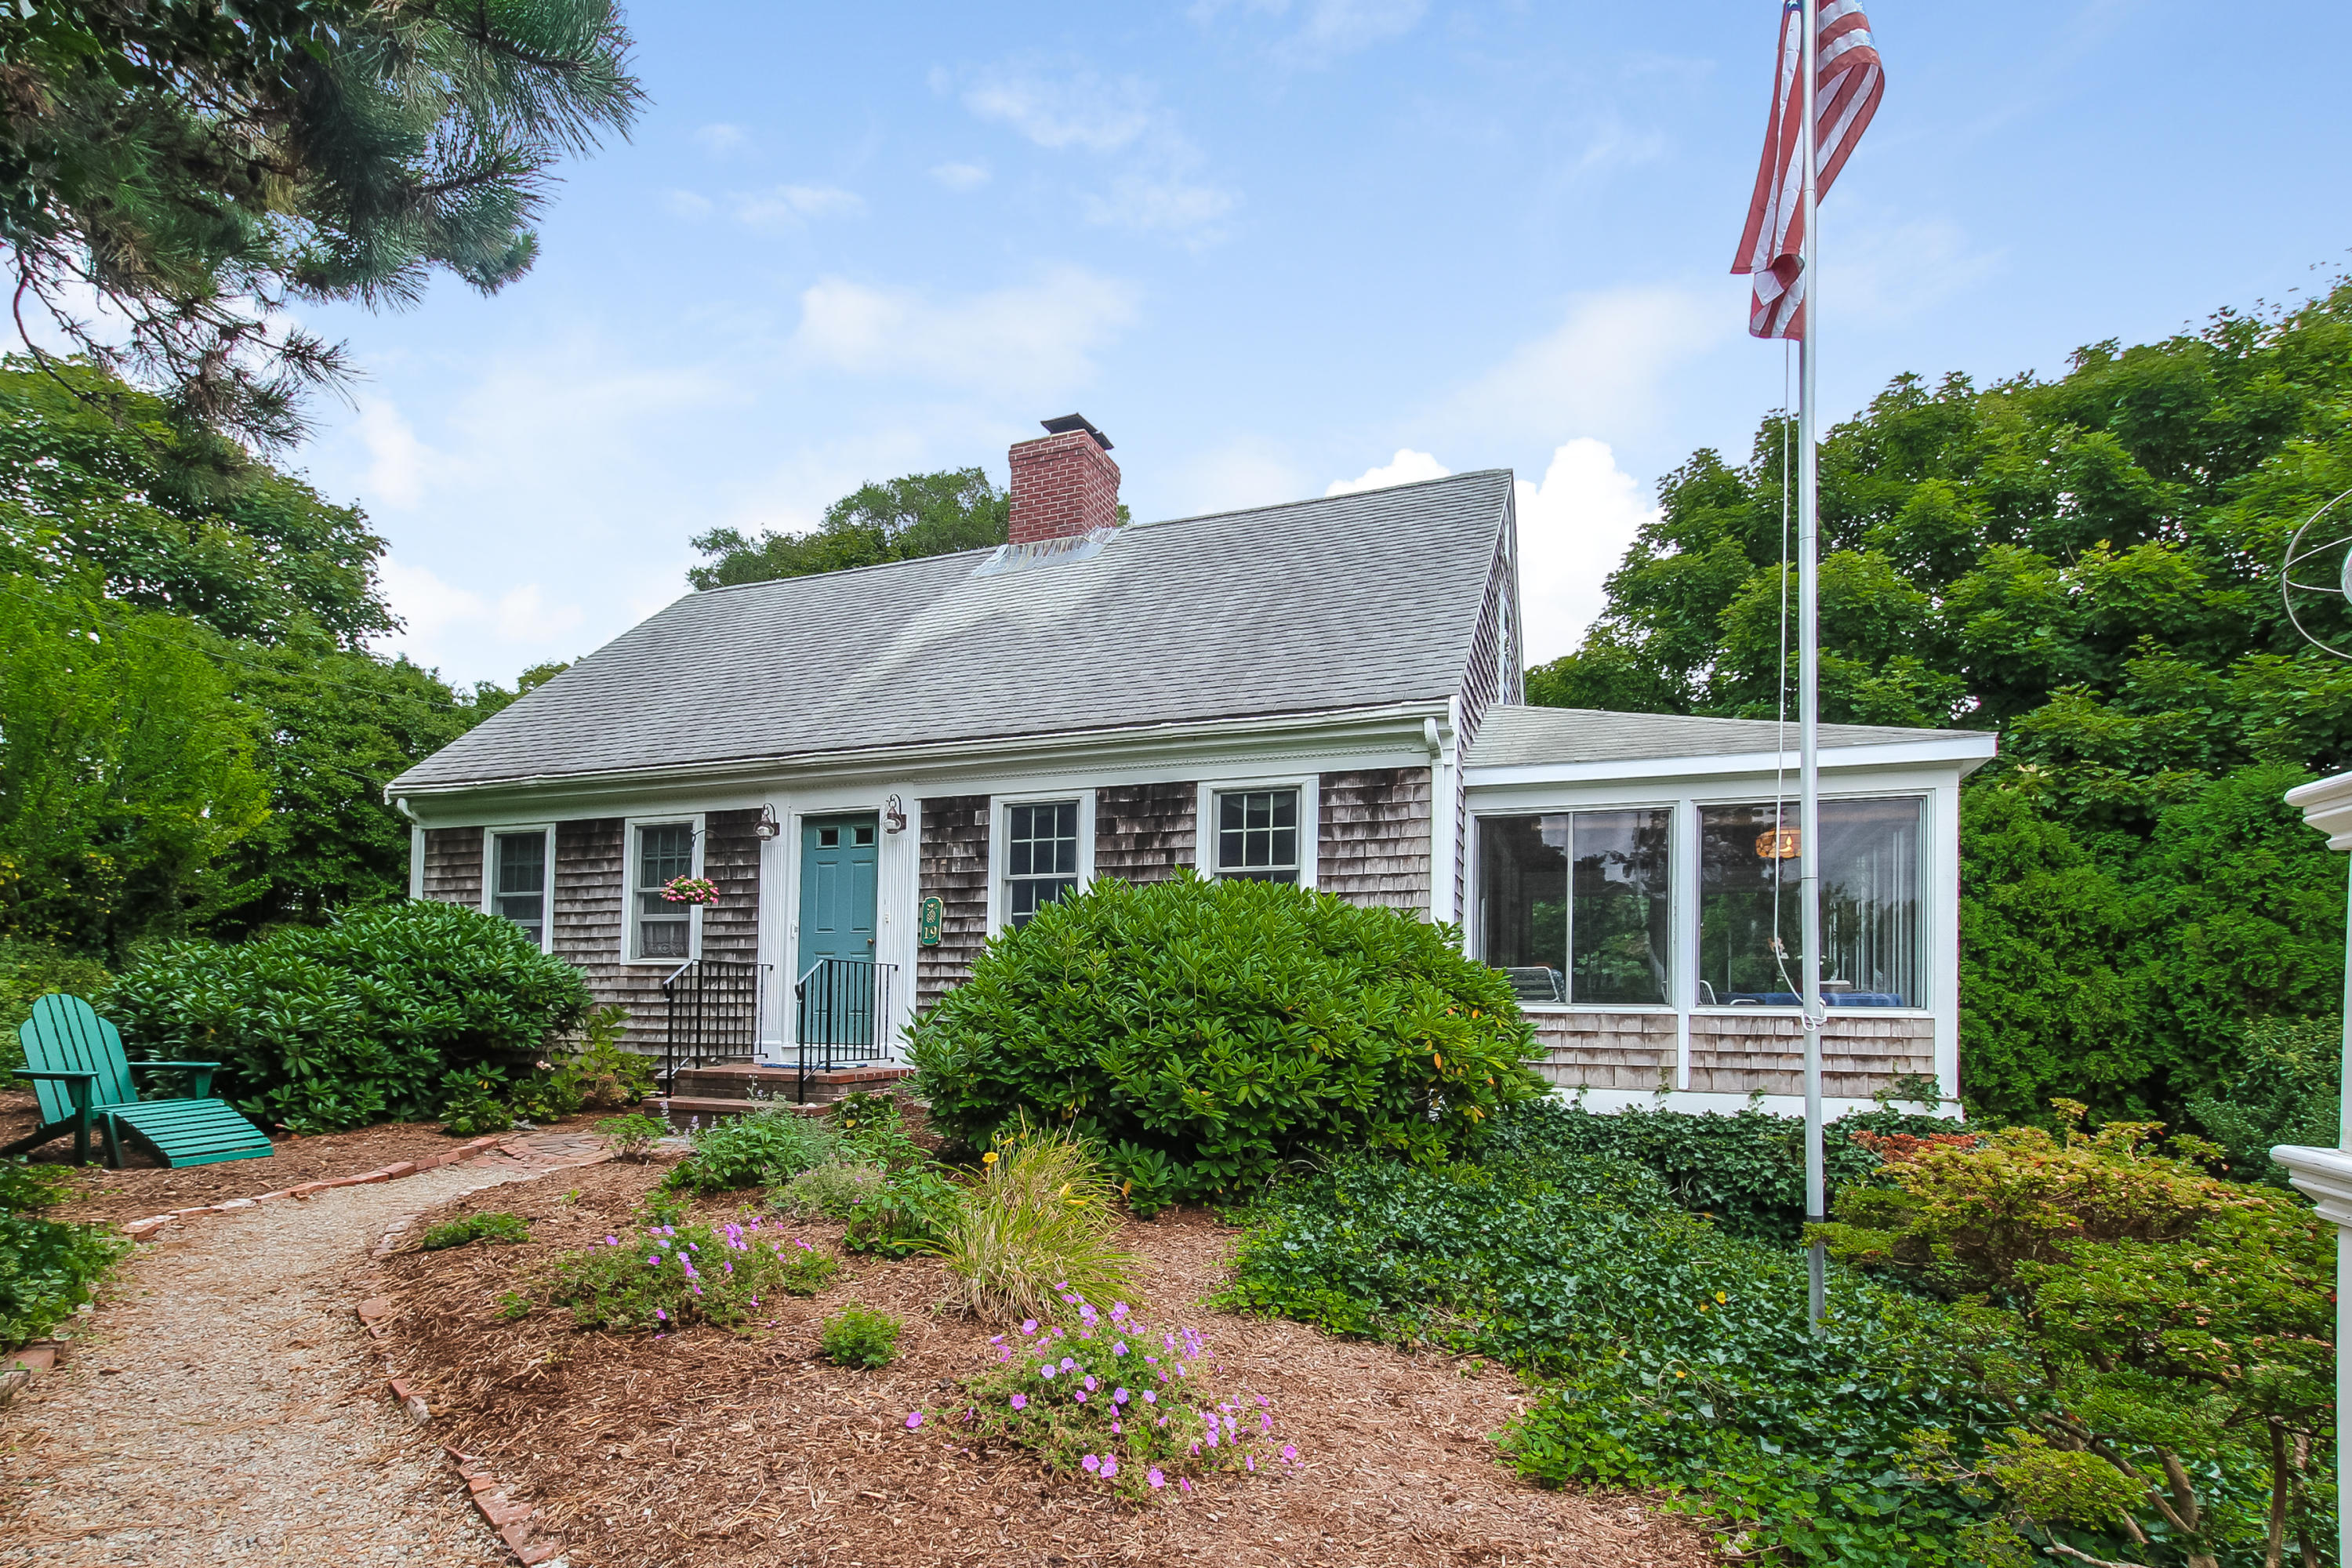 19-pepper-lane-chatham-ma-02633